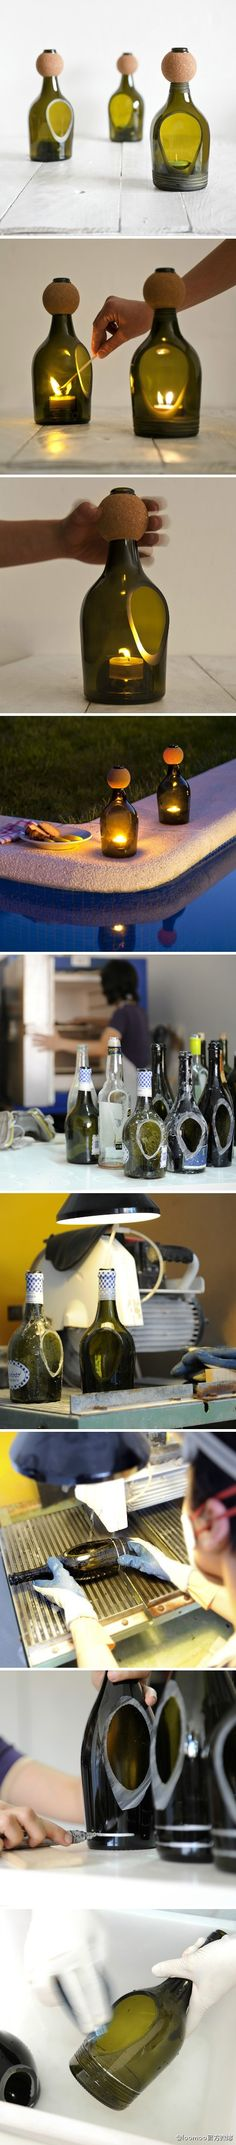 44 Simple DIY Wine Bottles Crafts And Ideas On How To Cut Glass: still not old enough to drink wine but I shall find one in any recycling bin to do this DIY! Wine Bottle Corks, Glass Bottle Crafts, Diy Bottle, Beer Bottles, Garrafa Diy, Bottle Cutting, Cutting Glass Bottles, Wine Craft, Ideias Diy